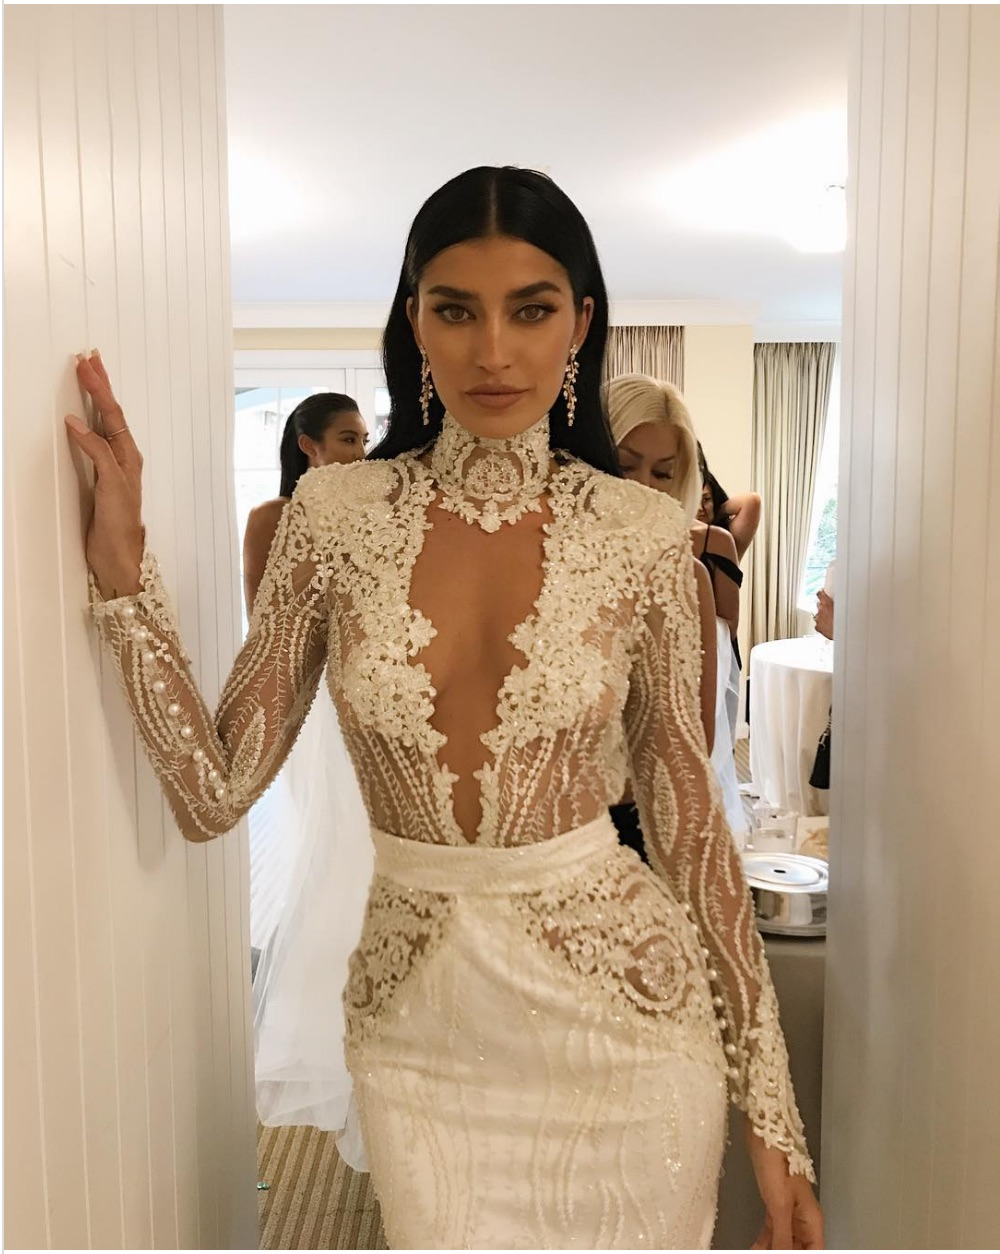 WAGS Stars Nicole Williams U0026 Larry Englishu0026#39;s #NicandLarry Wedding Is Trending | Find Out Why ...